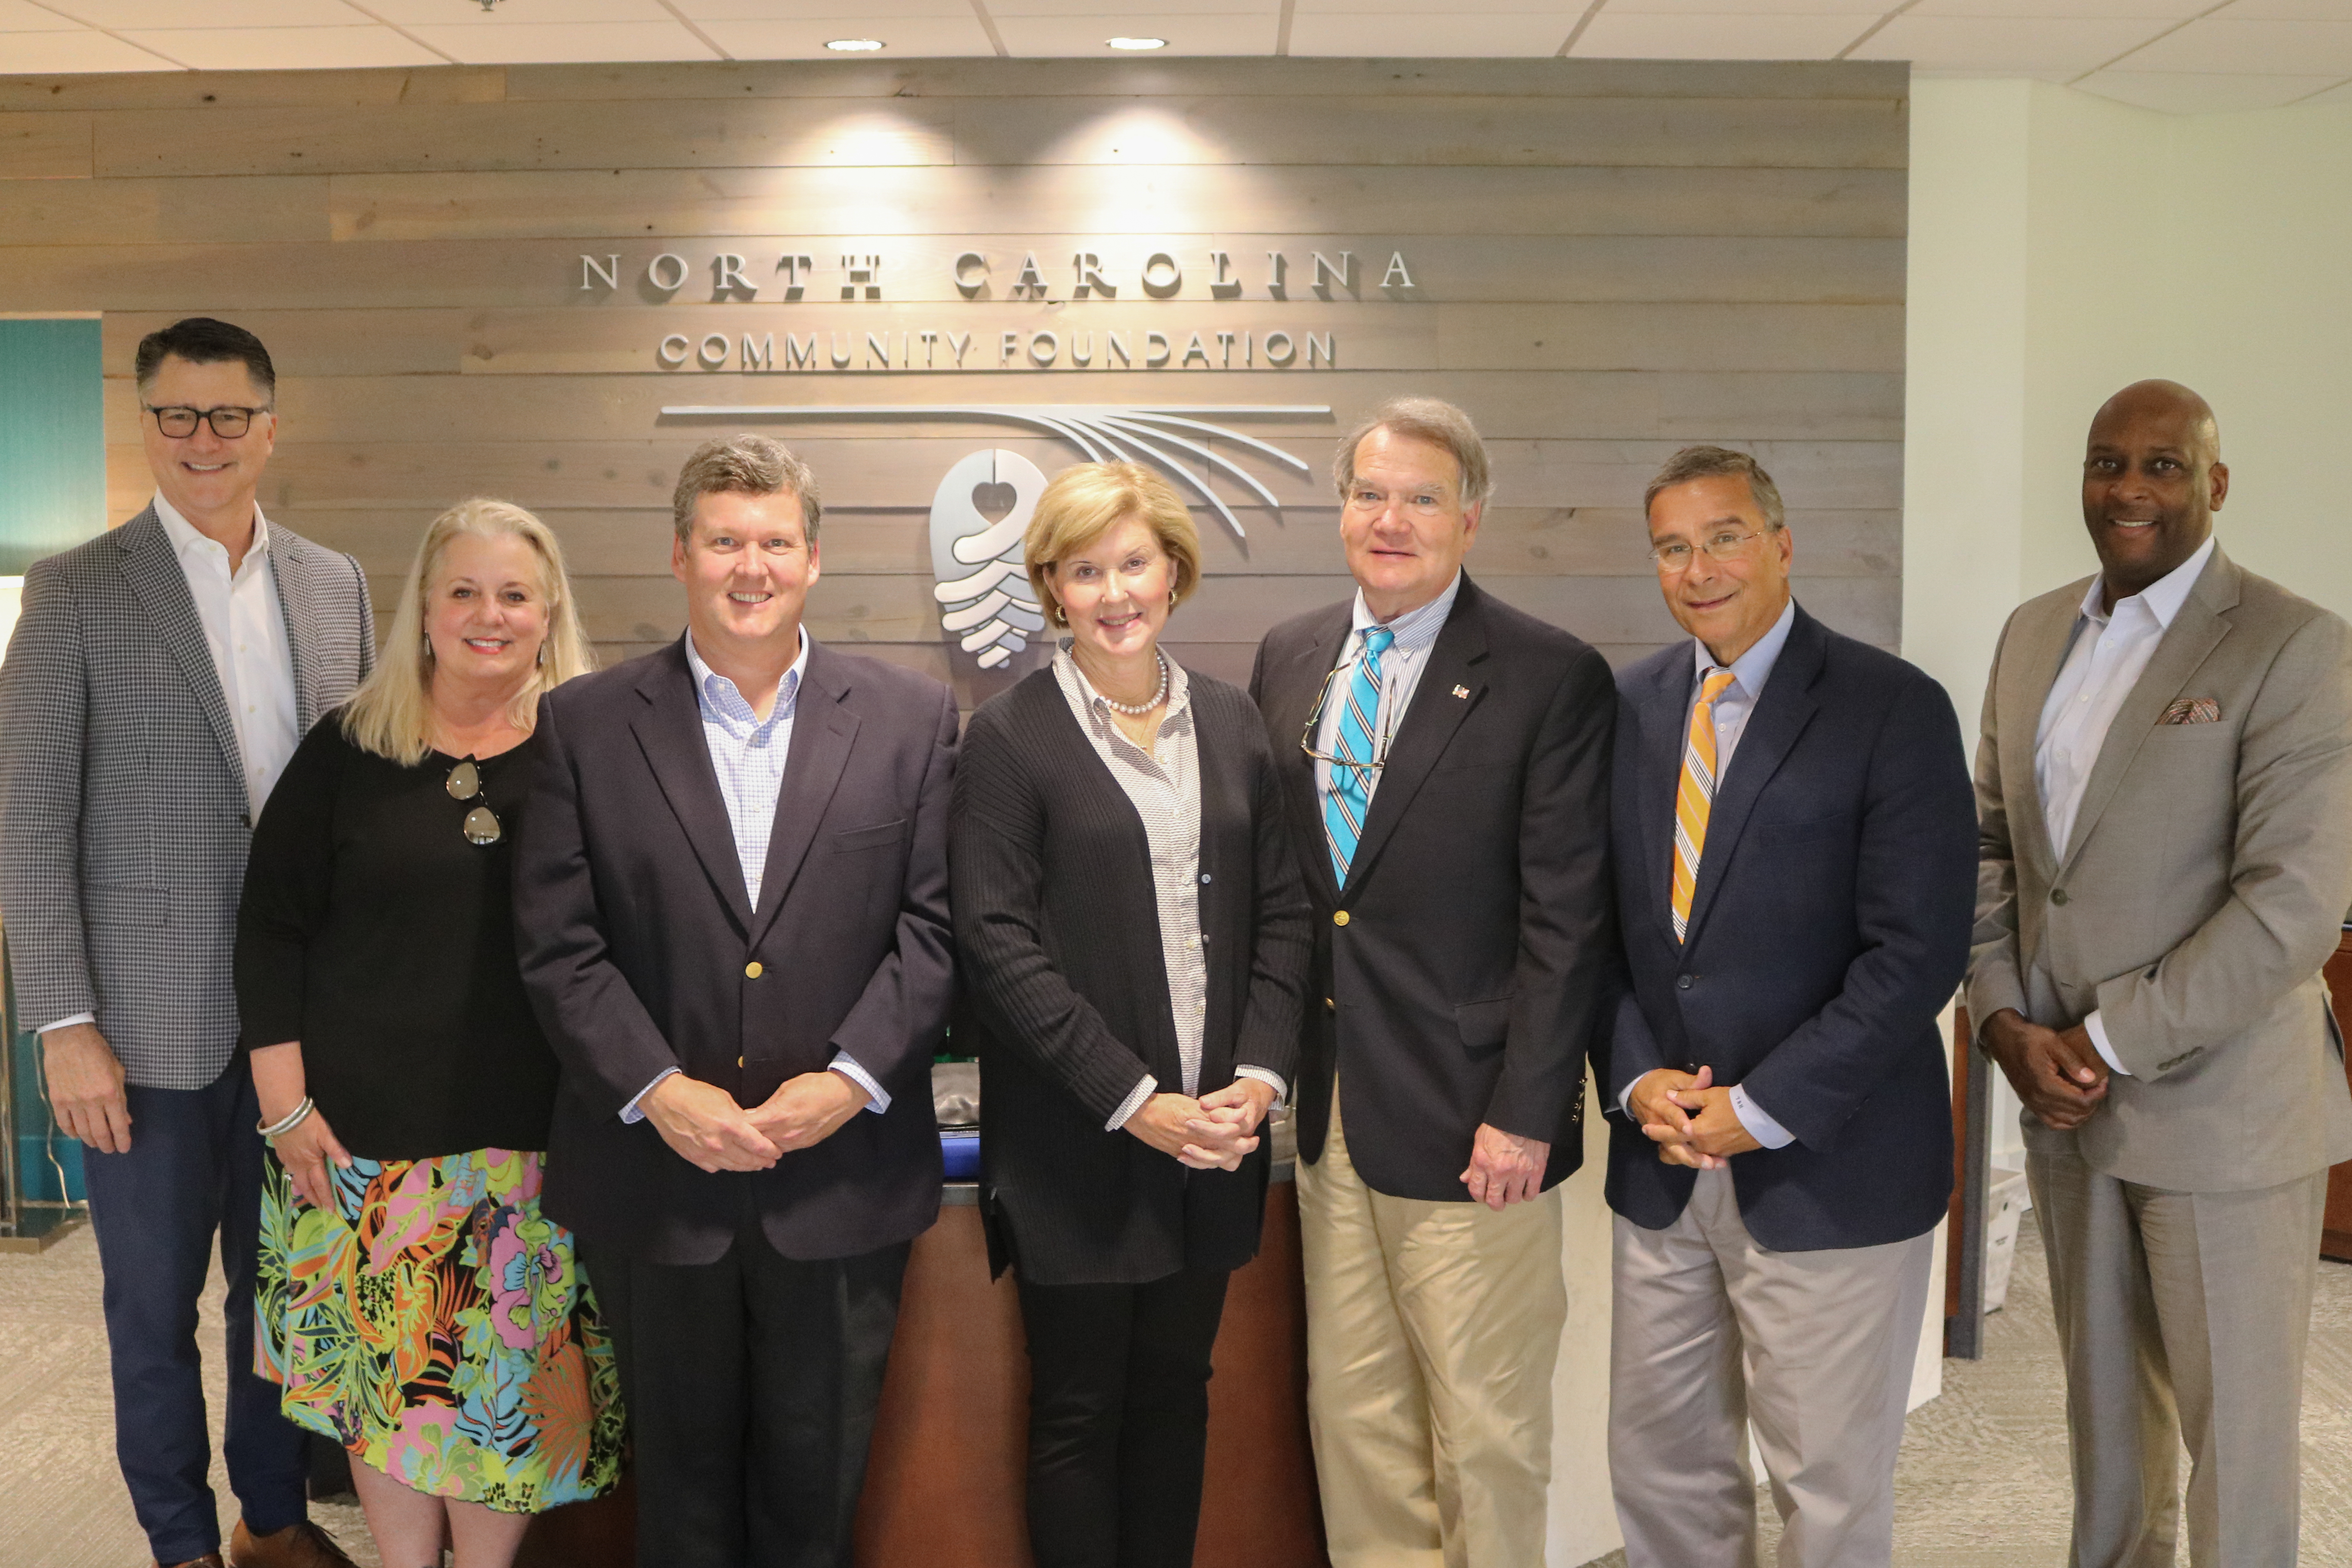 Pictured (left to right) are members of the Affiliate Impact Committee: Bob Knornegay, Lucia Peel, Al Wheless, Jan Hayes, John Bratton, Tyler Harris and Juan Austin. Not pictured are committee members James Narron, Jamilla Hawkins and Michael Cooper.